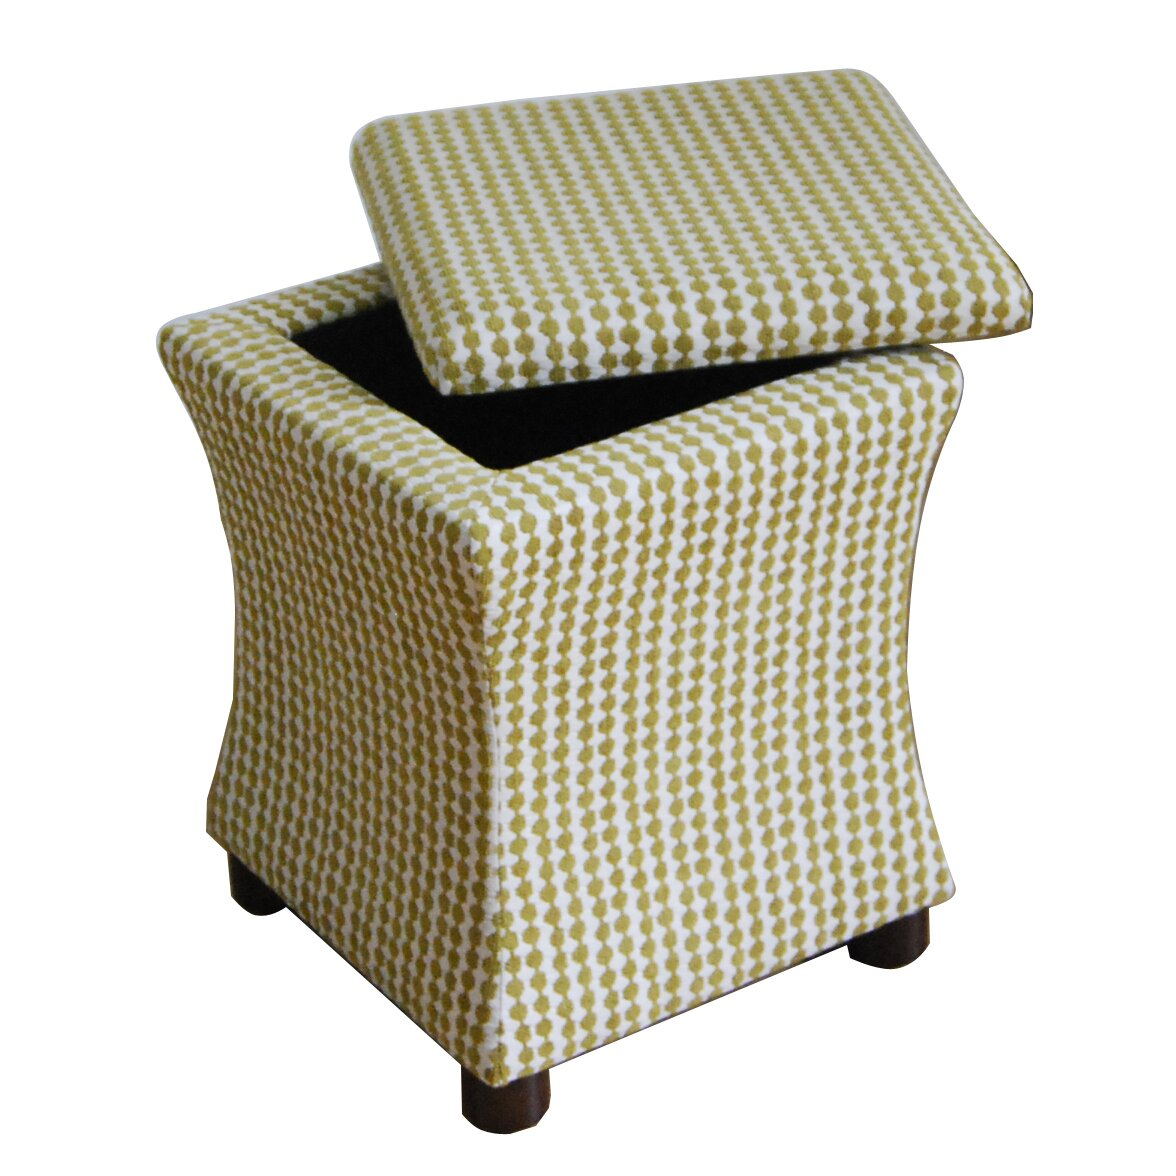 Homepop Fey Upholstered Storage Cube Ottoman Reviews